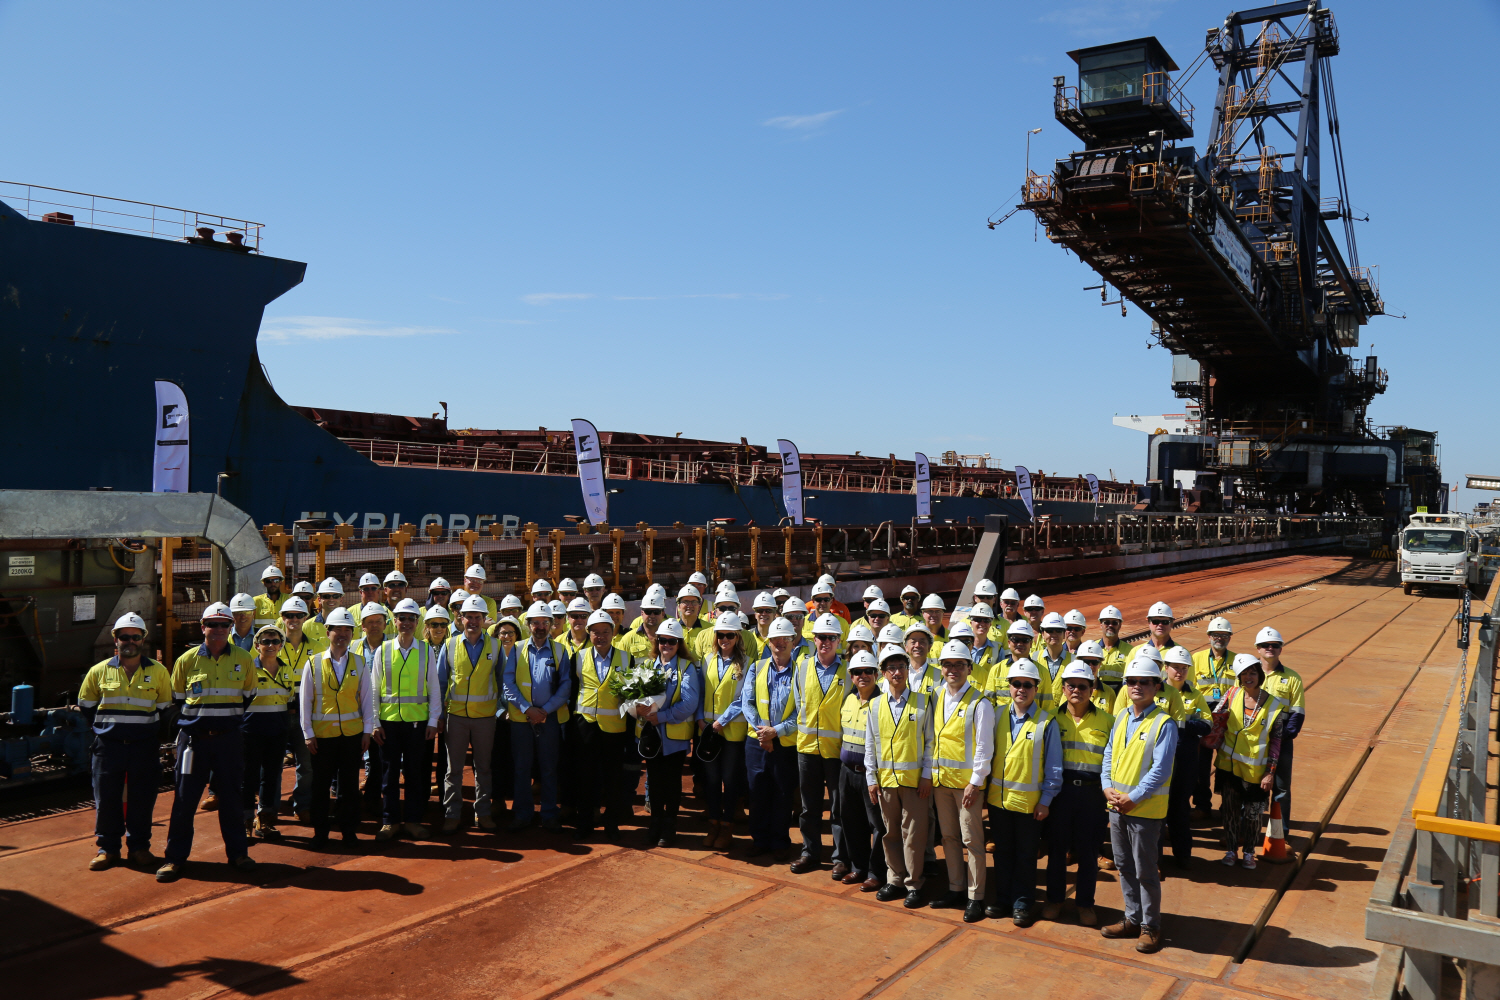 Workers at Port Hedland pose for a photo celebrating the completion of the Roy Hill Project.